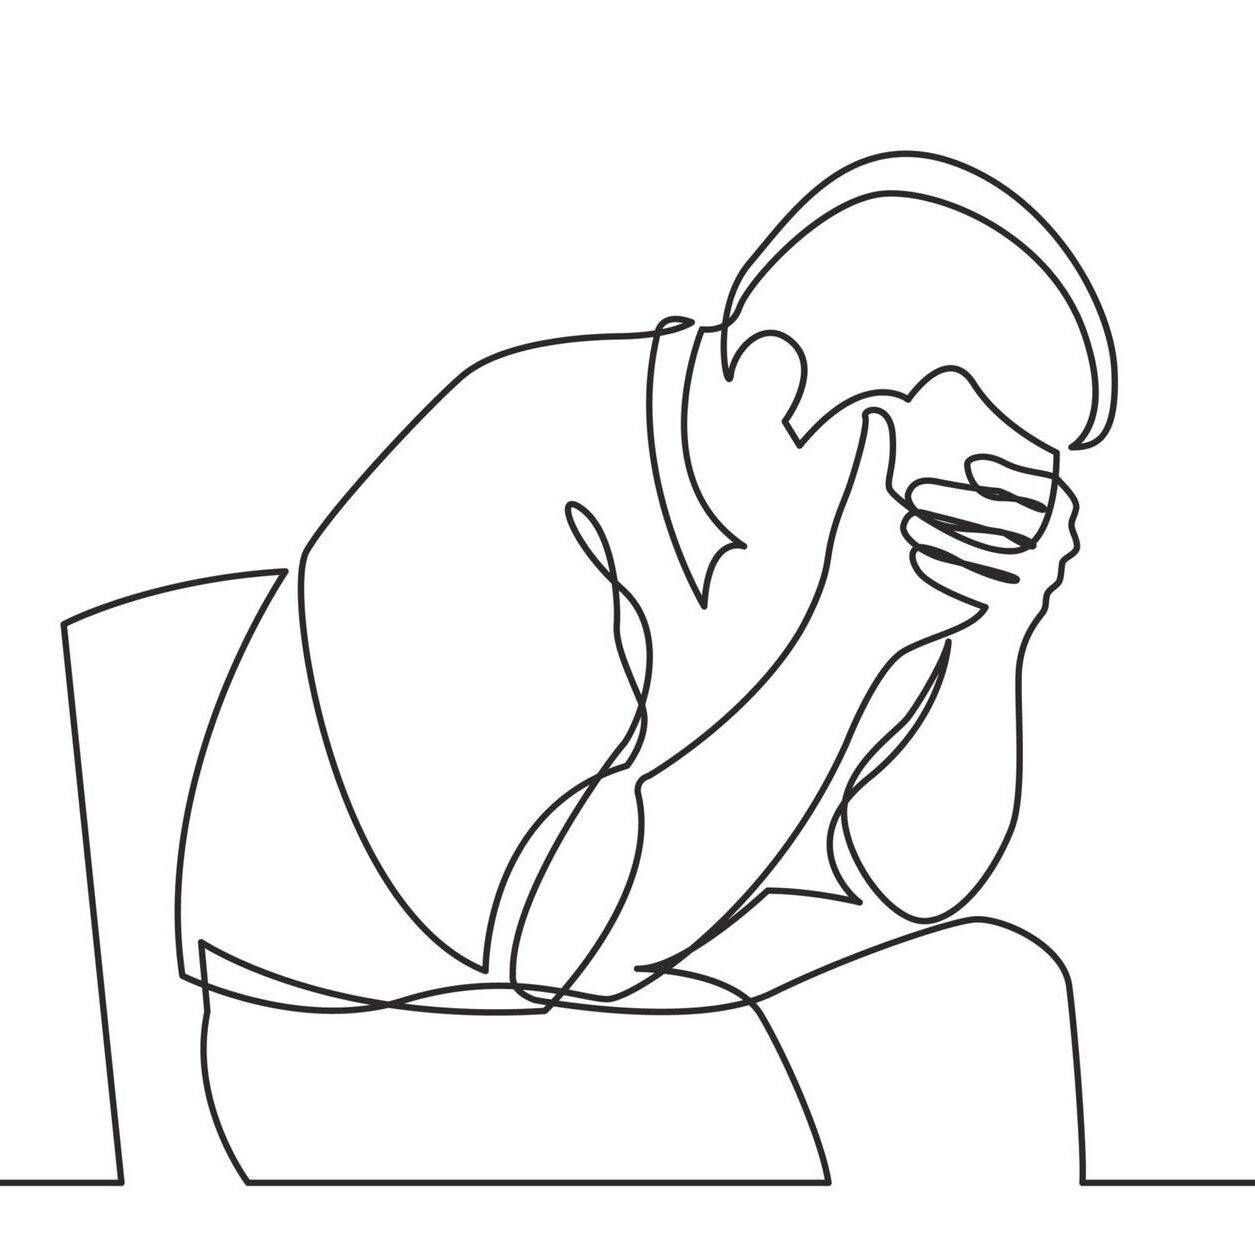 continuous line drawing of depressed man sitting on chair, chronic shame, depression, Rewire